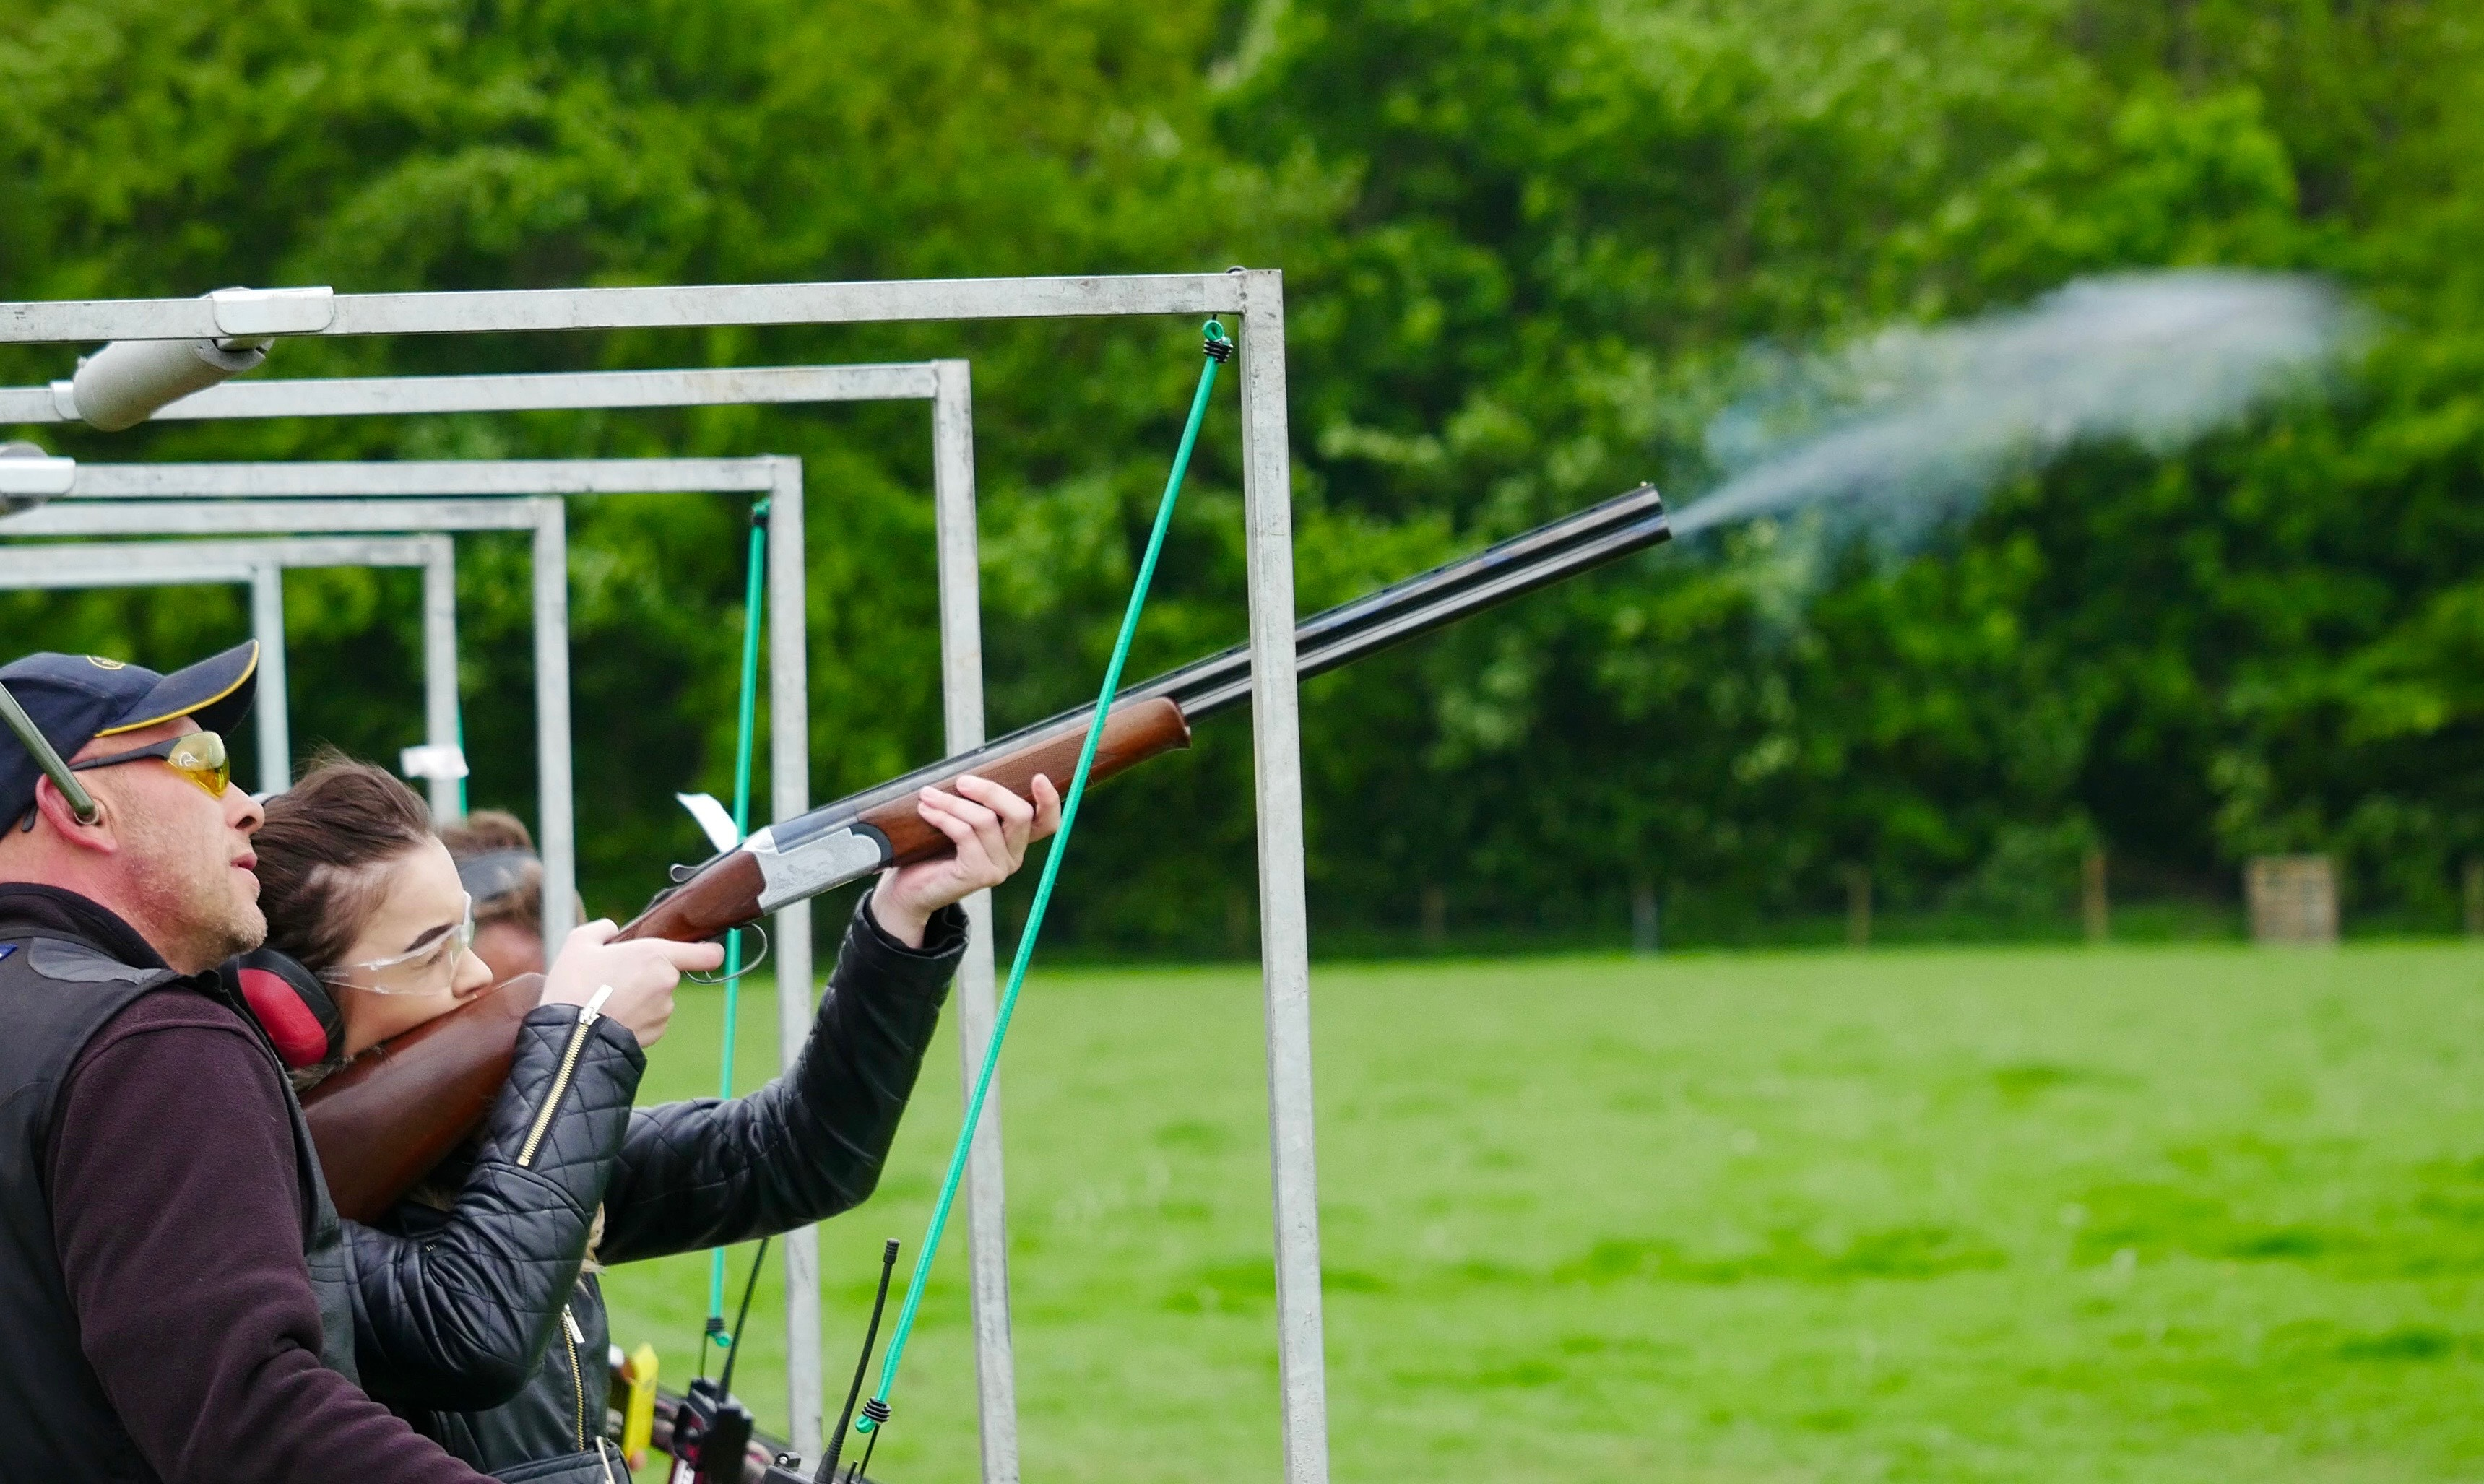 woman shooting clay pigeons